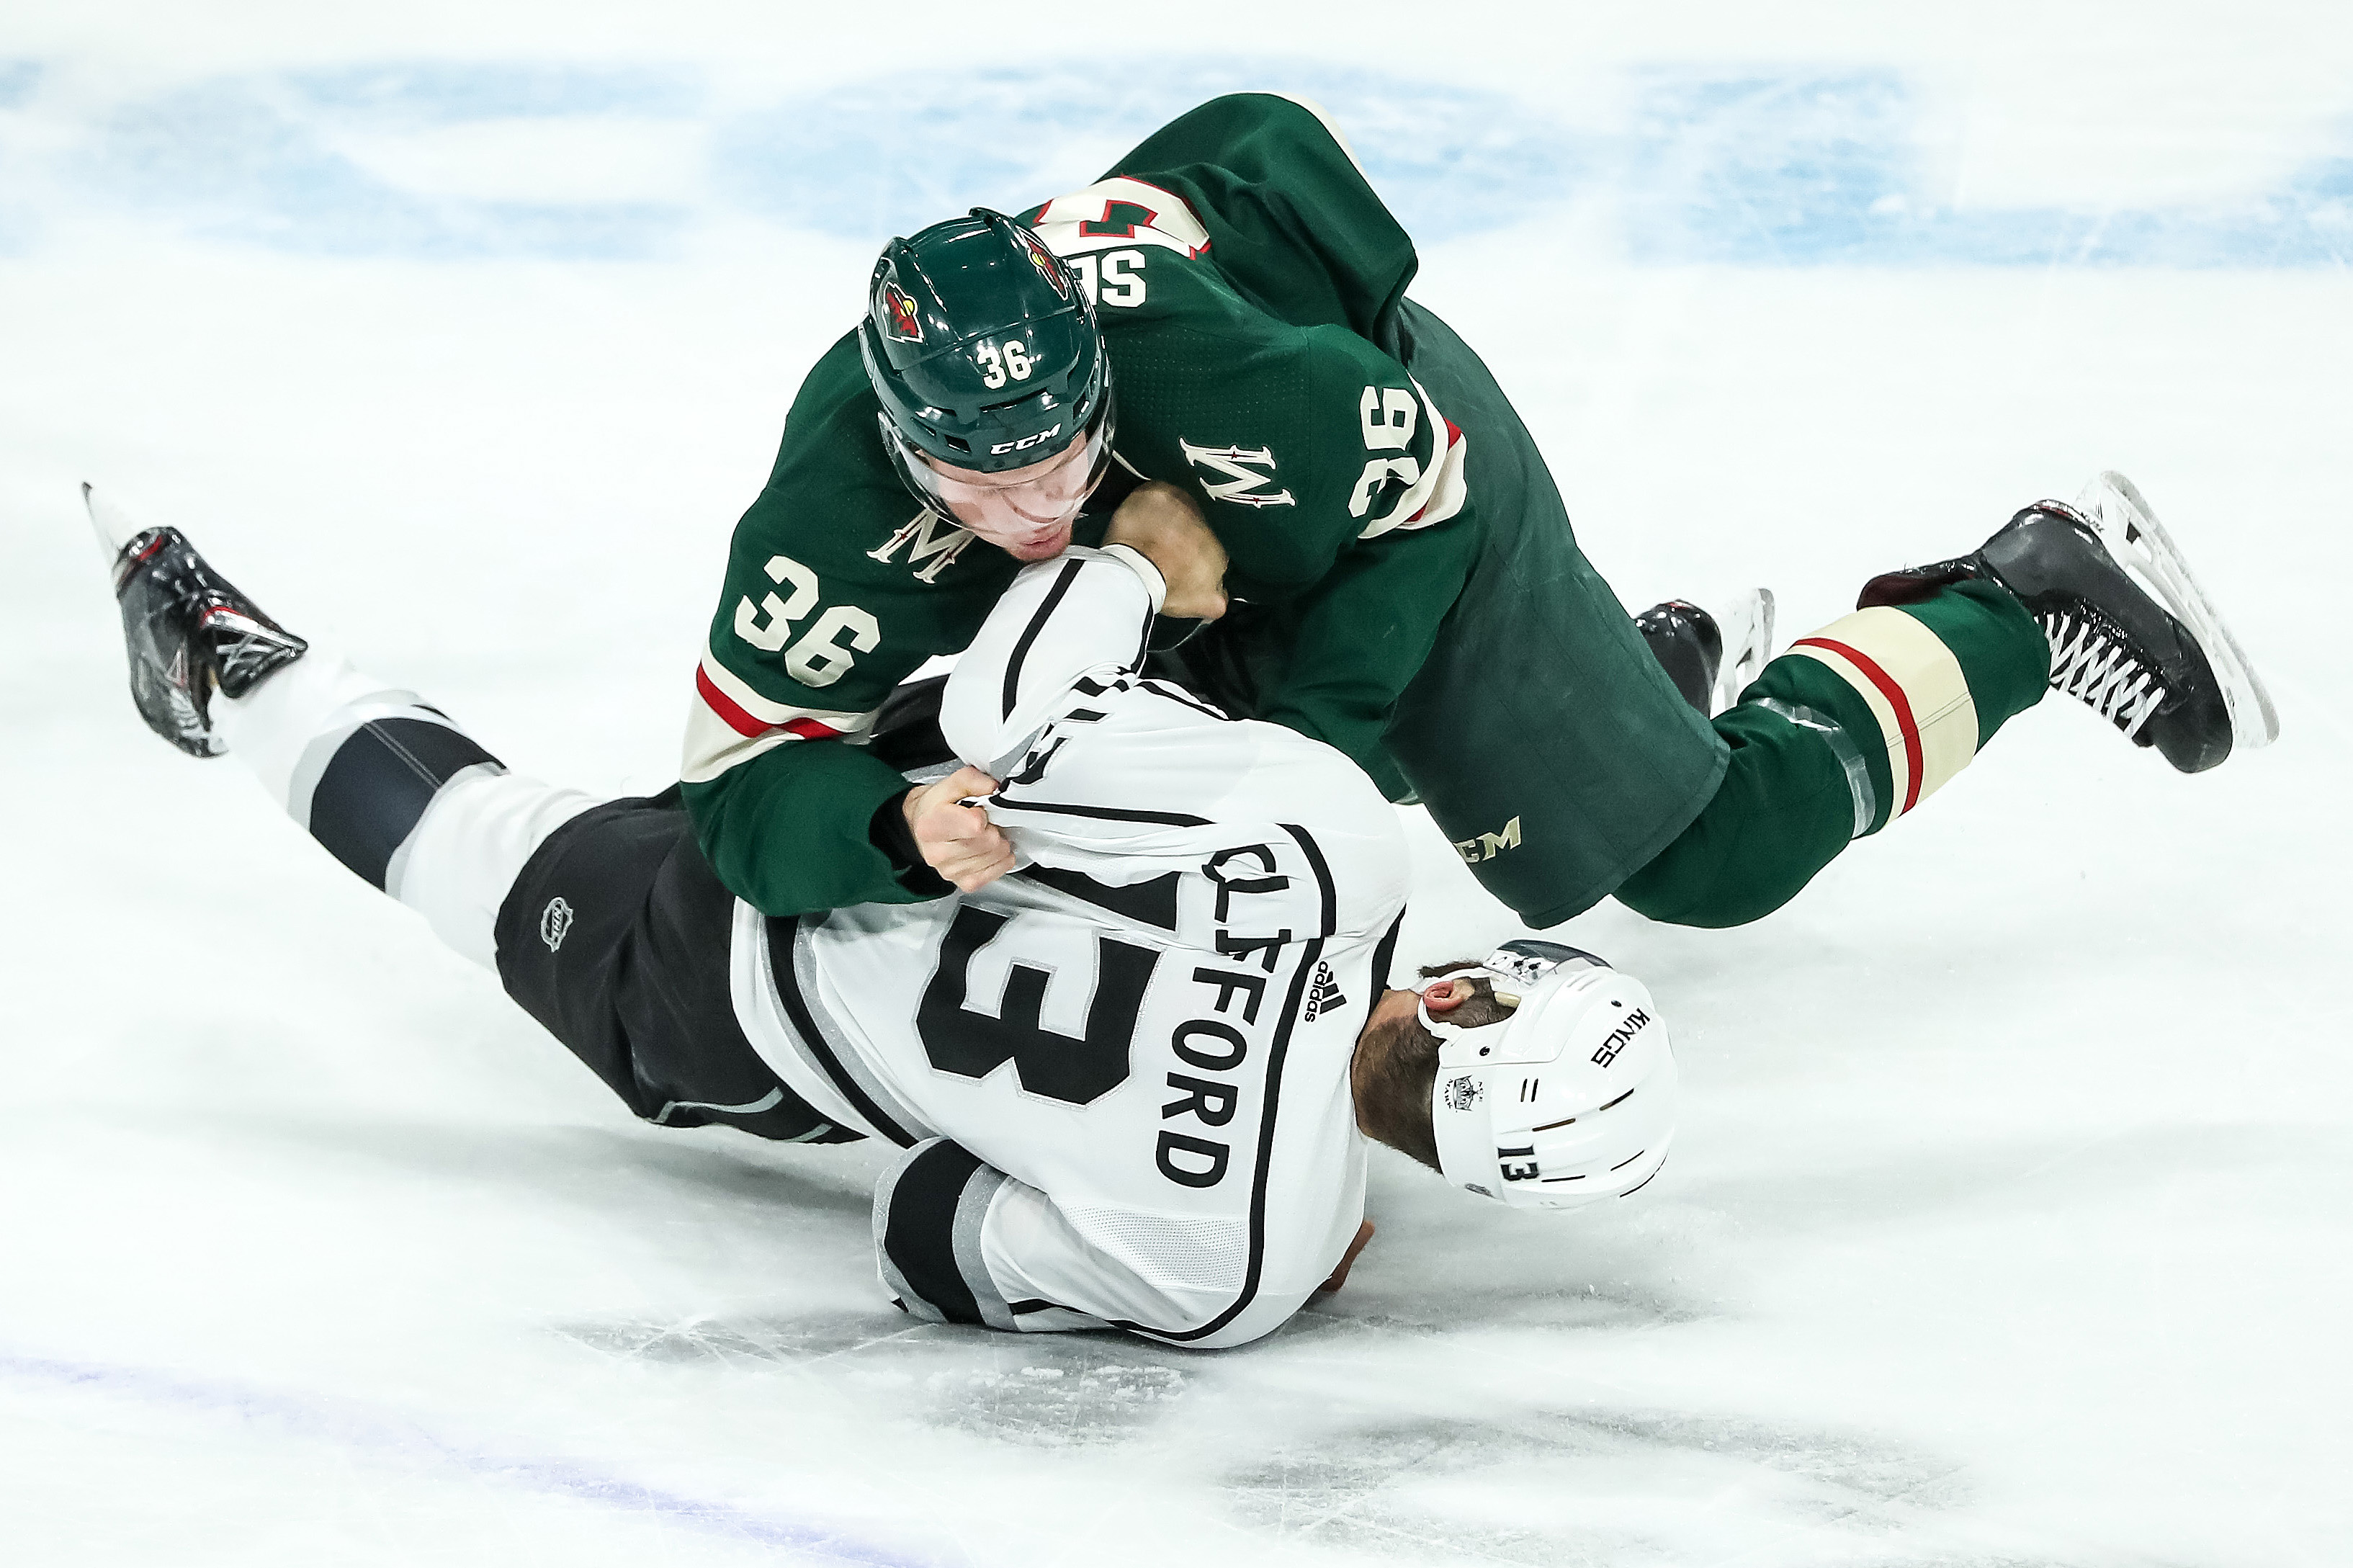 Game Preview: Minnesota Wild vs. Los Angeles Kings 11/8/18 @ 9:30PM CST at Staples Center